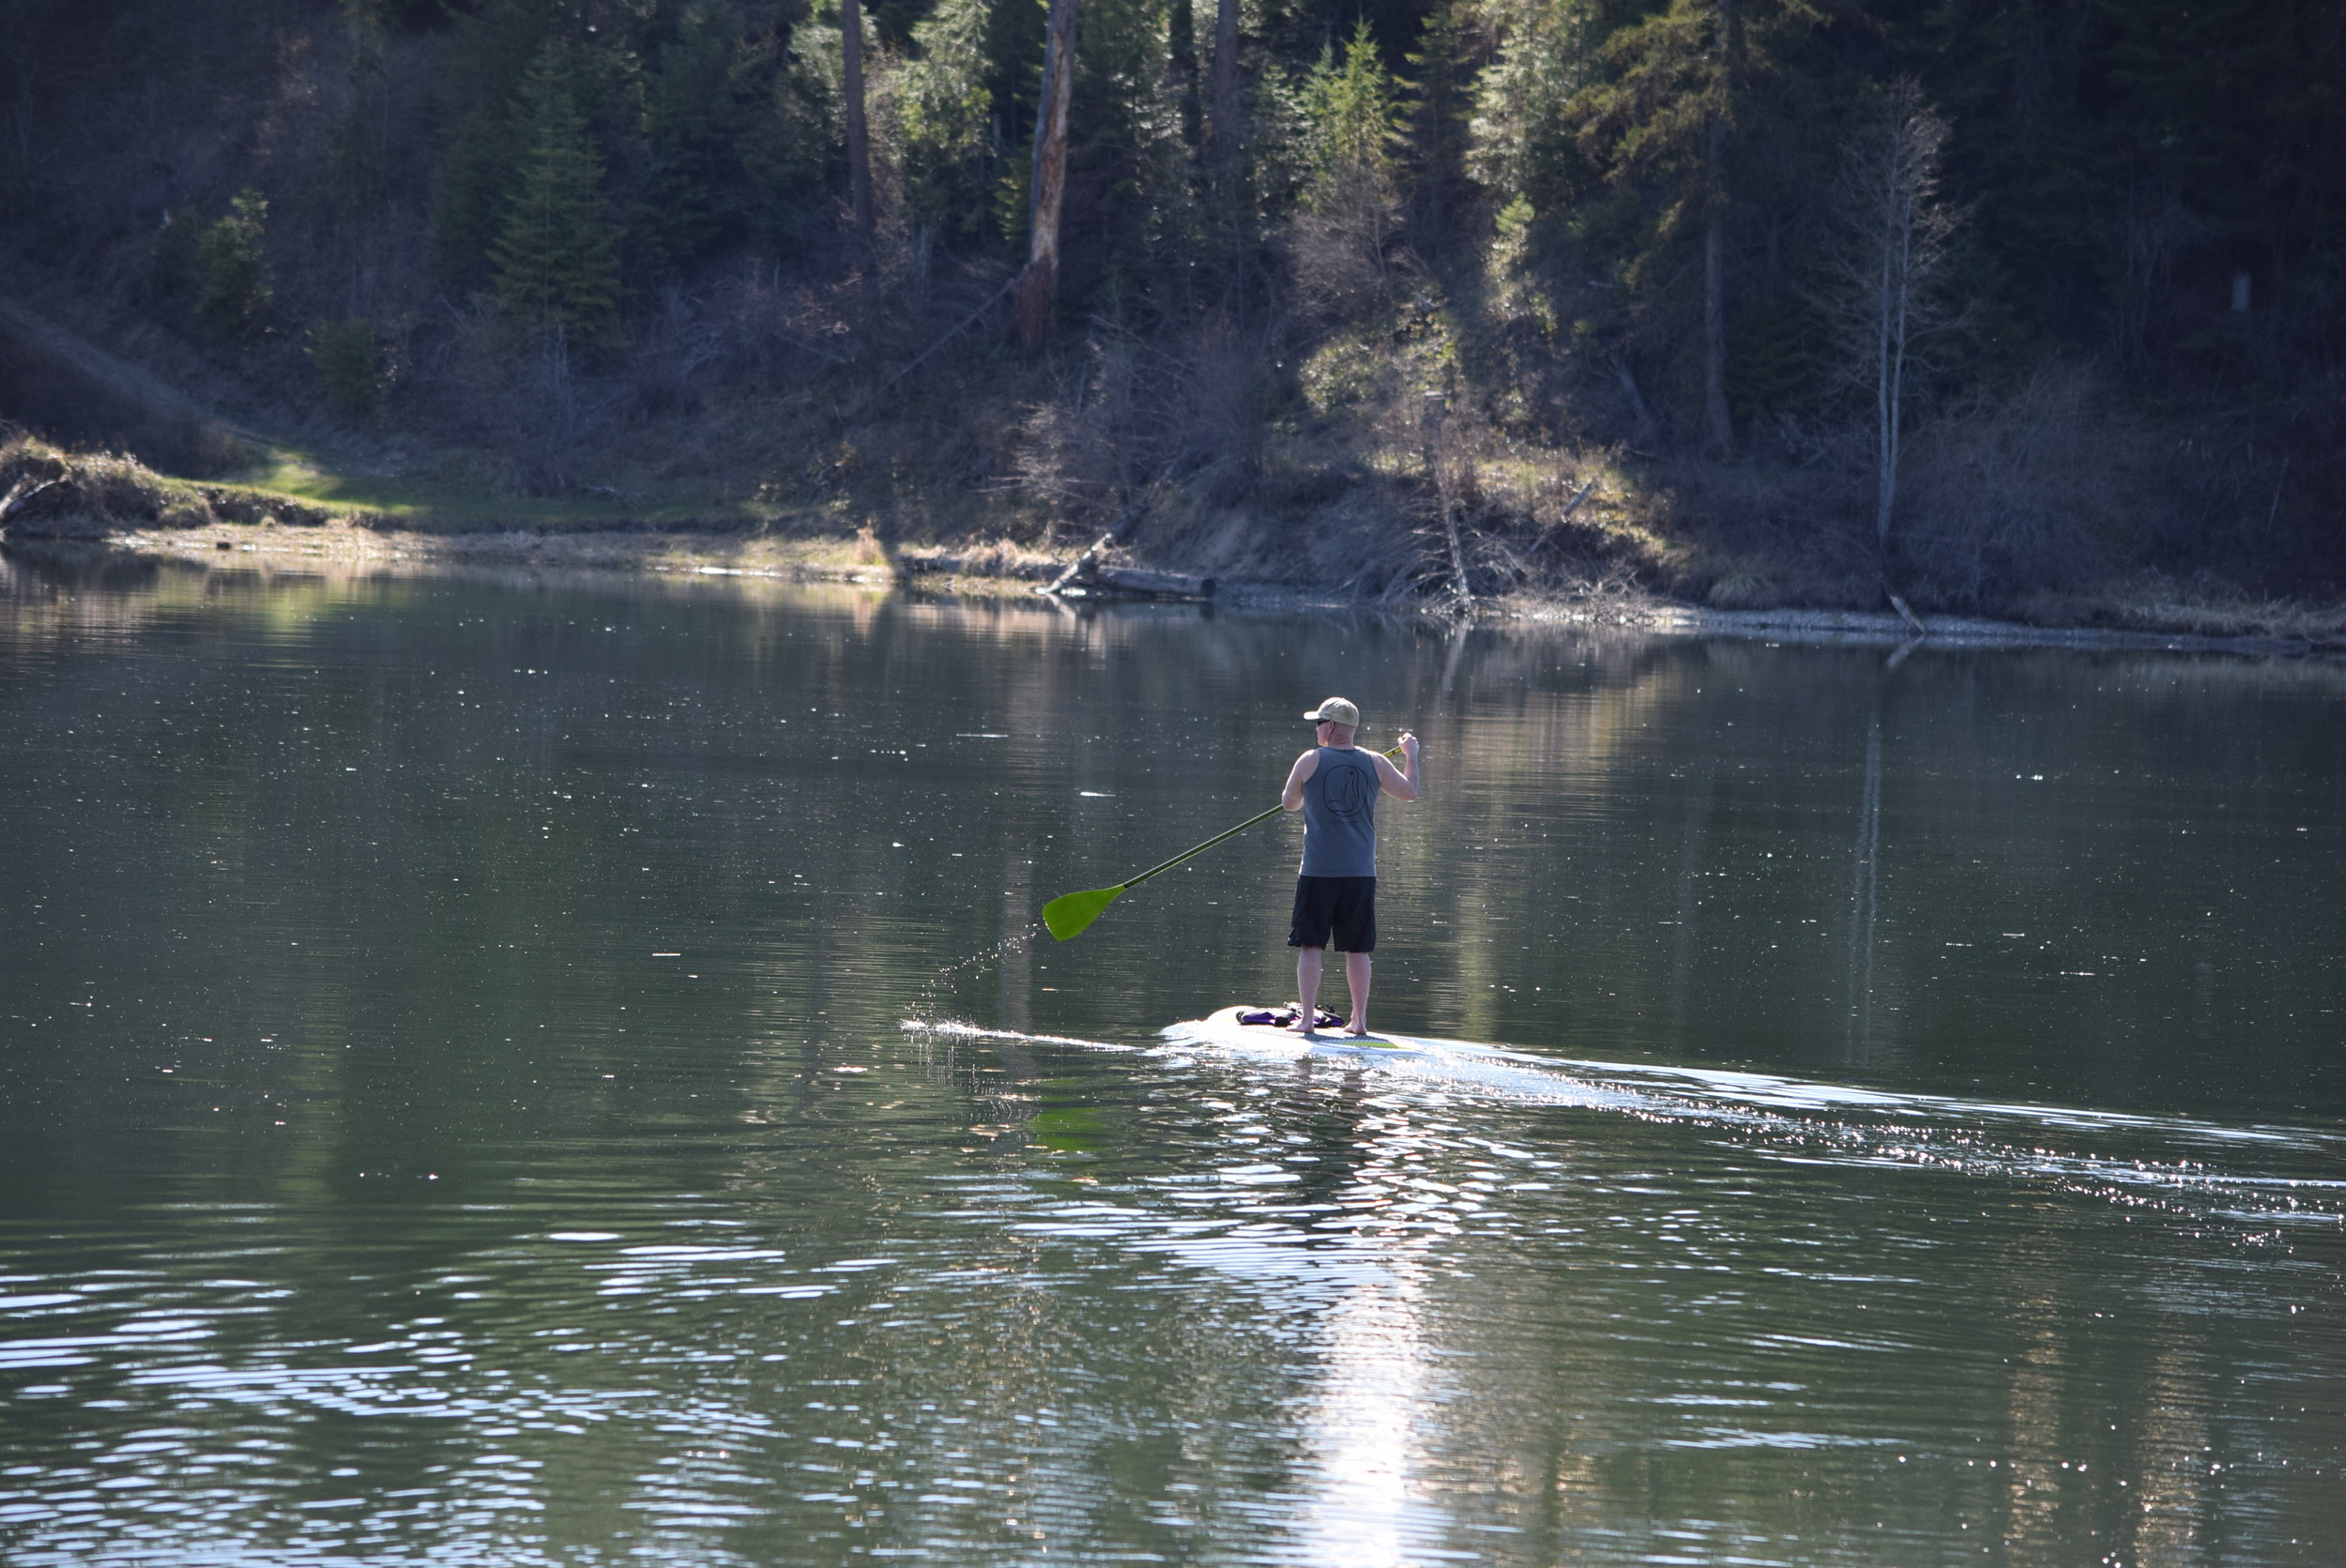 Paul paddling out.